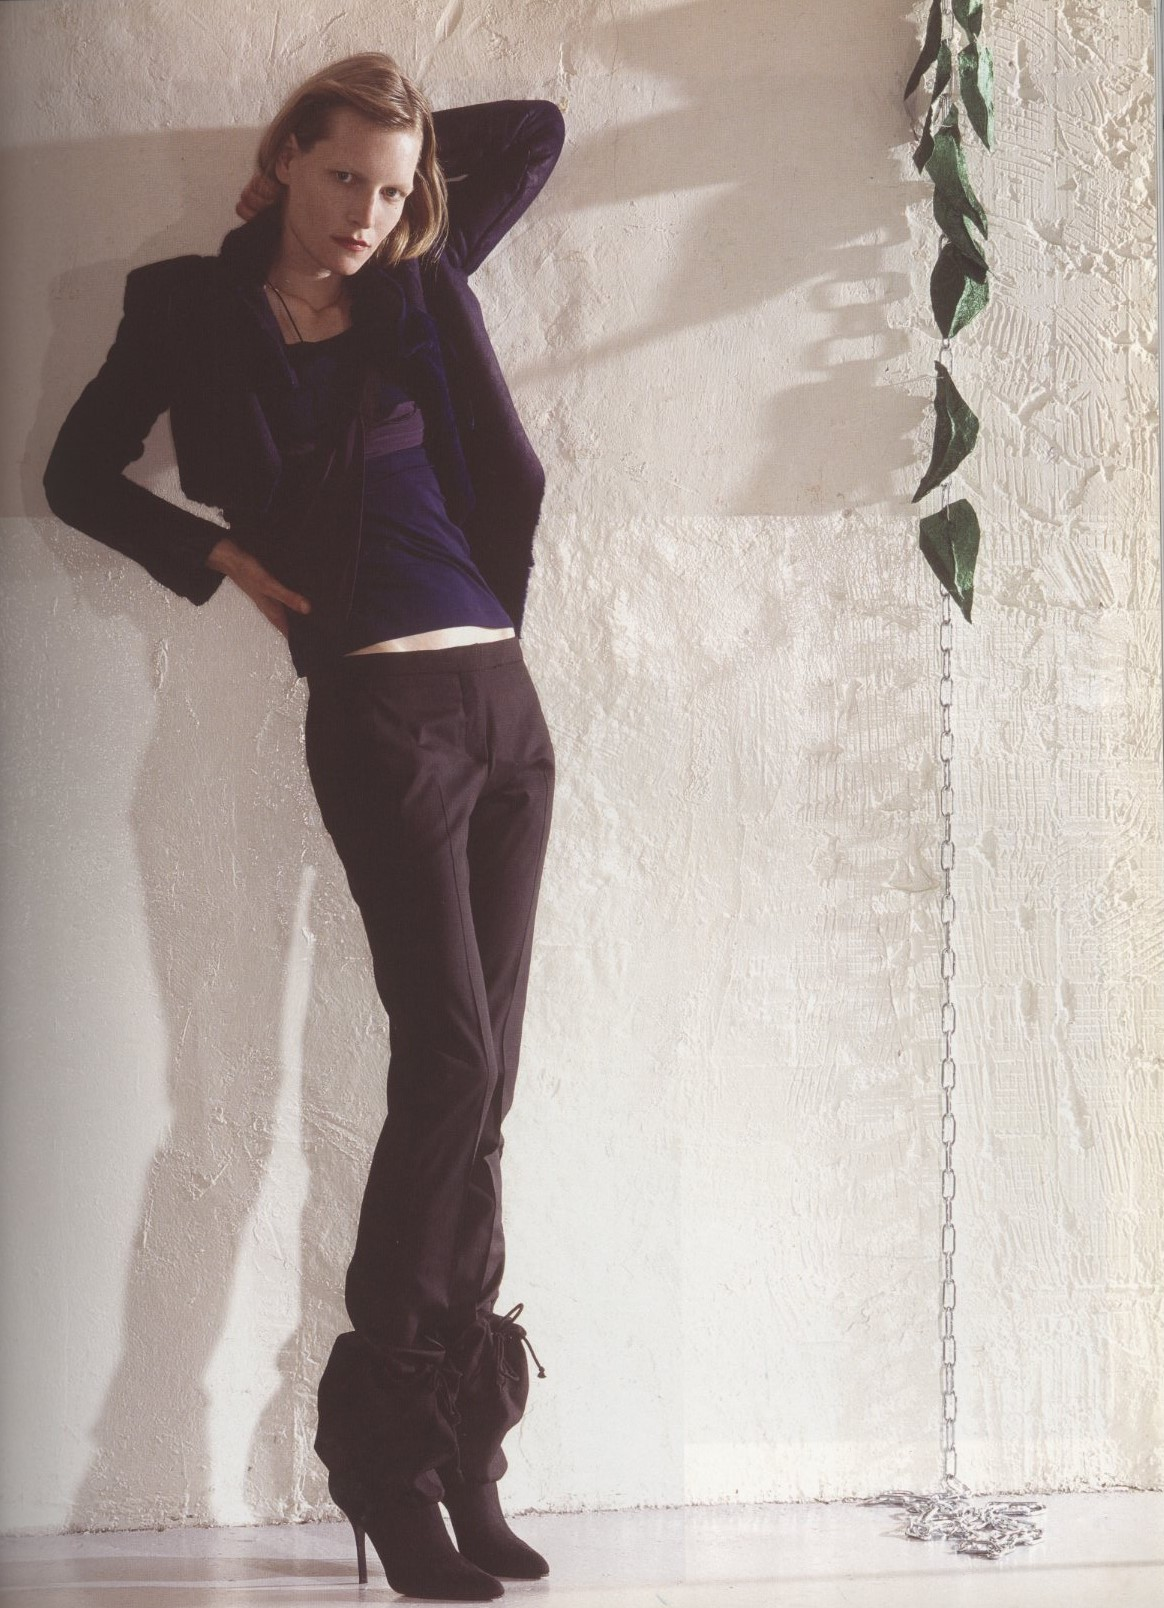 PURPLE BEST OF THE SEASON KIRSTEN OWEN | HELMUT LANG PHOTOGRAPHY ANNUSCHKA BLOMMERS & NIELS SCHUMM | FASHION EDITOR YASMINE ESLAMI PURPLE FASHION NUMBER 2 FALL/WINTER 2004/2005